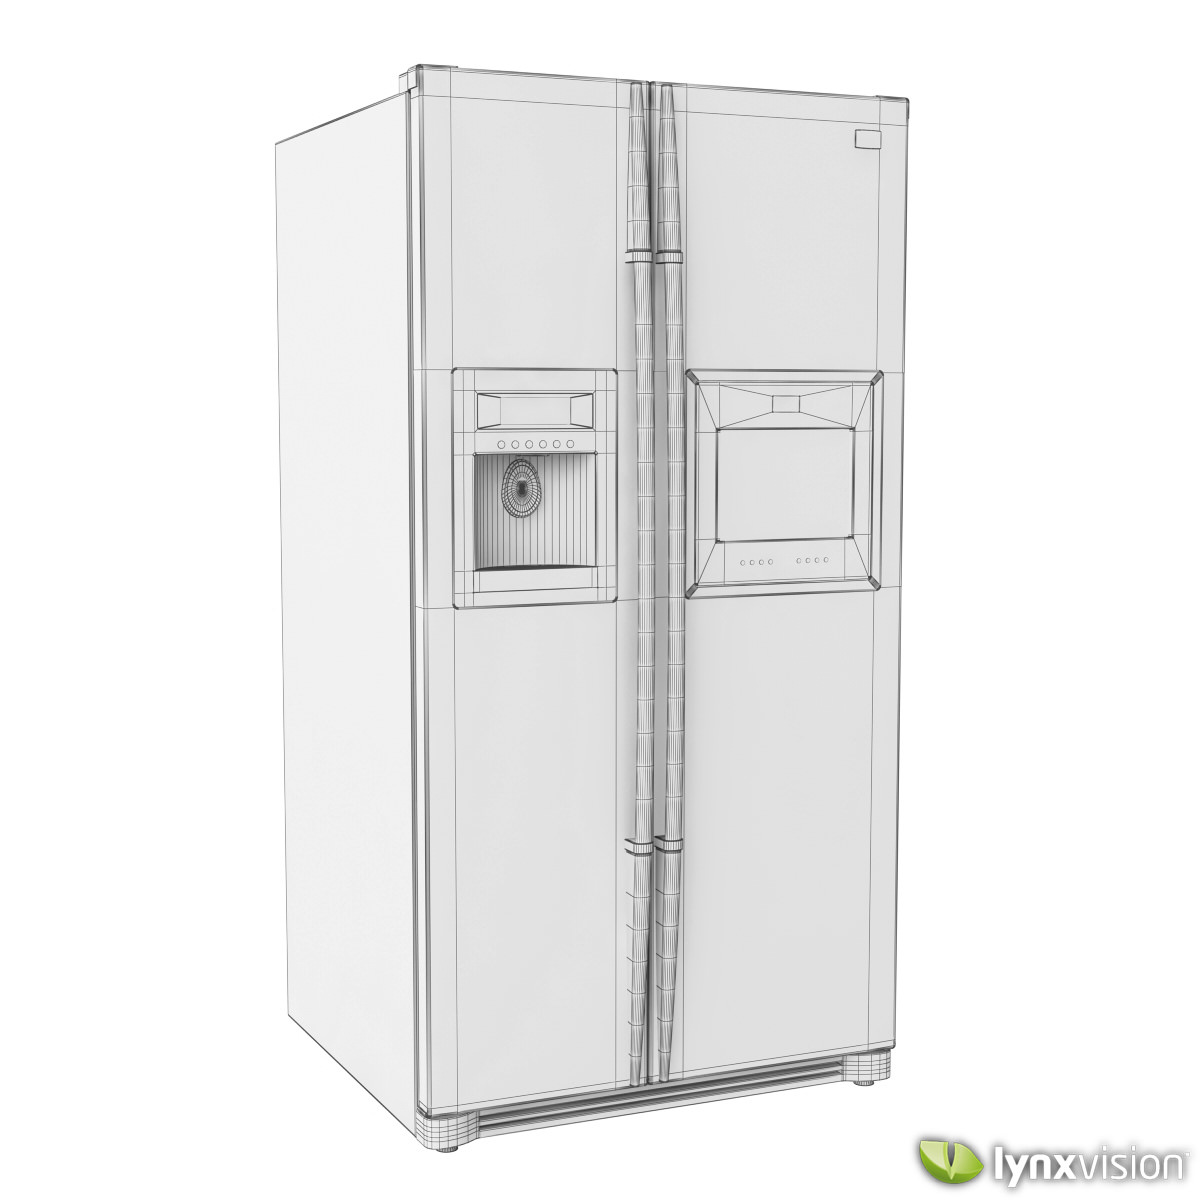 lg side by side refrigerator 3d model max obj fbx. Black Bedroom Furniture Sets. Home Design Ideas